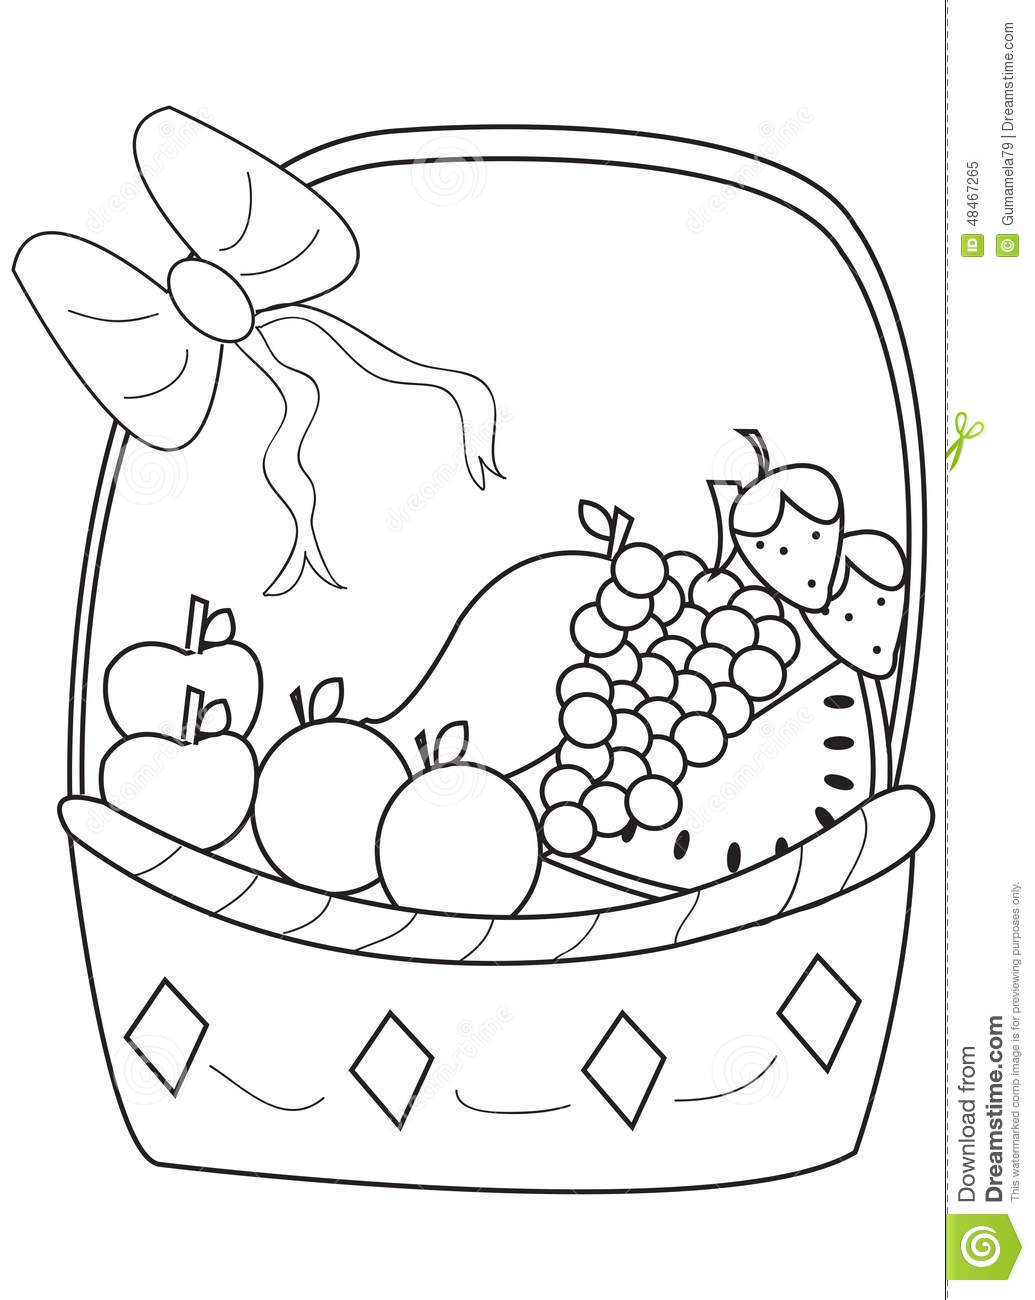 Hand Tools Coloring Pages Coloring Coloring Pages